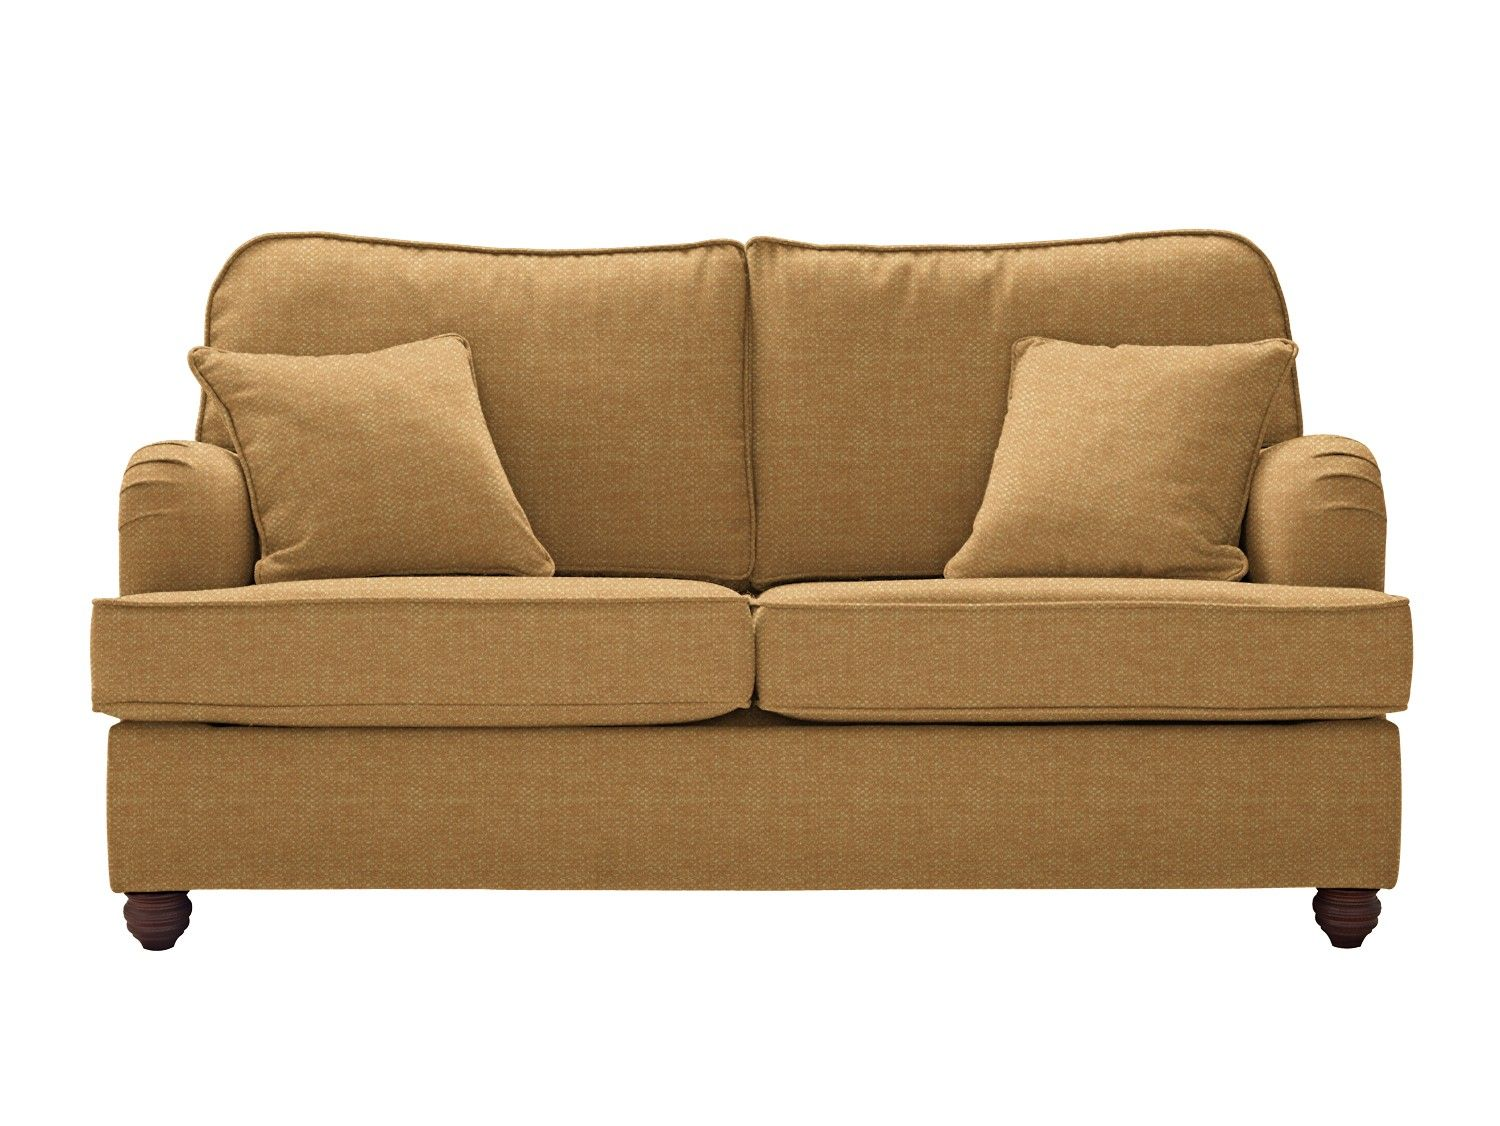 The Downton 2 Seater Sofa Bed | Willow U0026 Hall